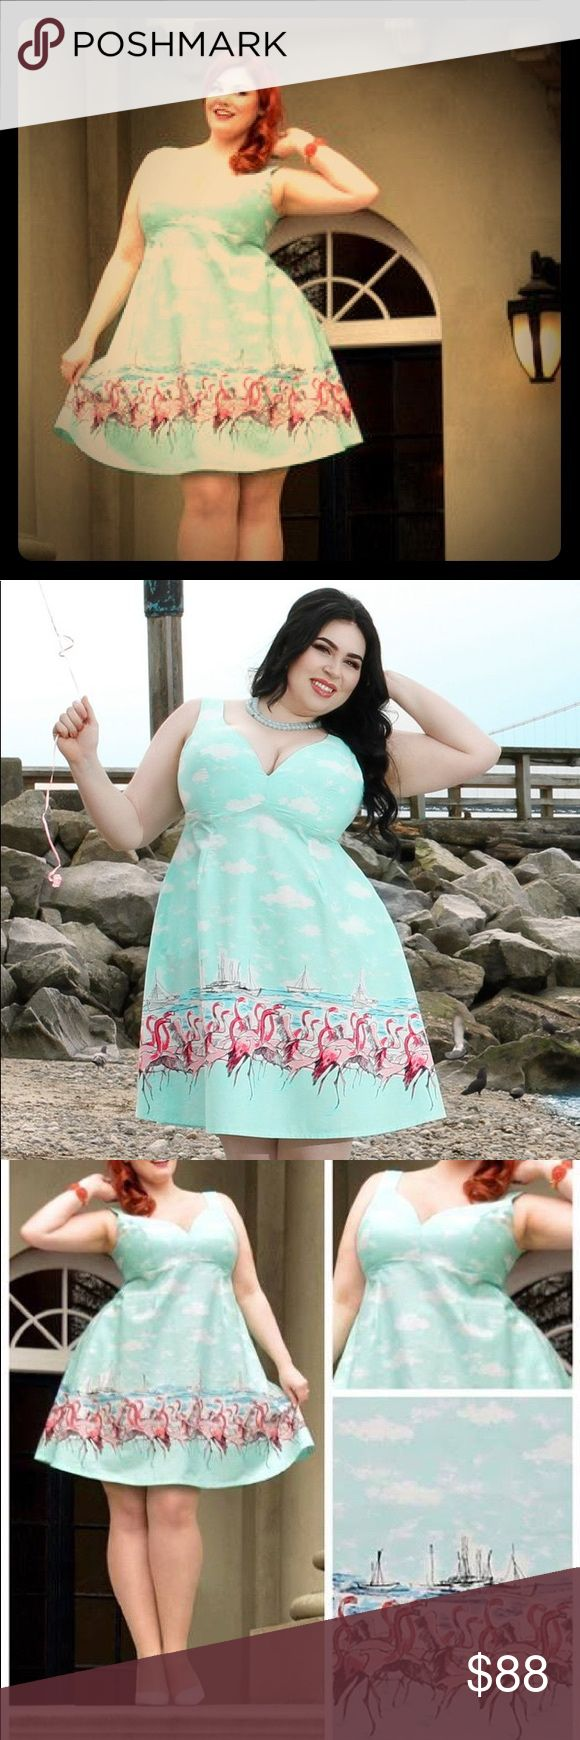 Cherry Velvet Flamingo Pinup Retro Dress 0X, NEW Awesome Aqua border print dress has nautical theme of sailboats and pink flamingos. Sweetheart neckline, zip up back, knee length. Size 0X, which fits a 16W-18W, please see chart. NWT by Cherry Velvet. Cherry Velvet Dresses Midi